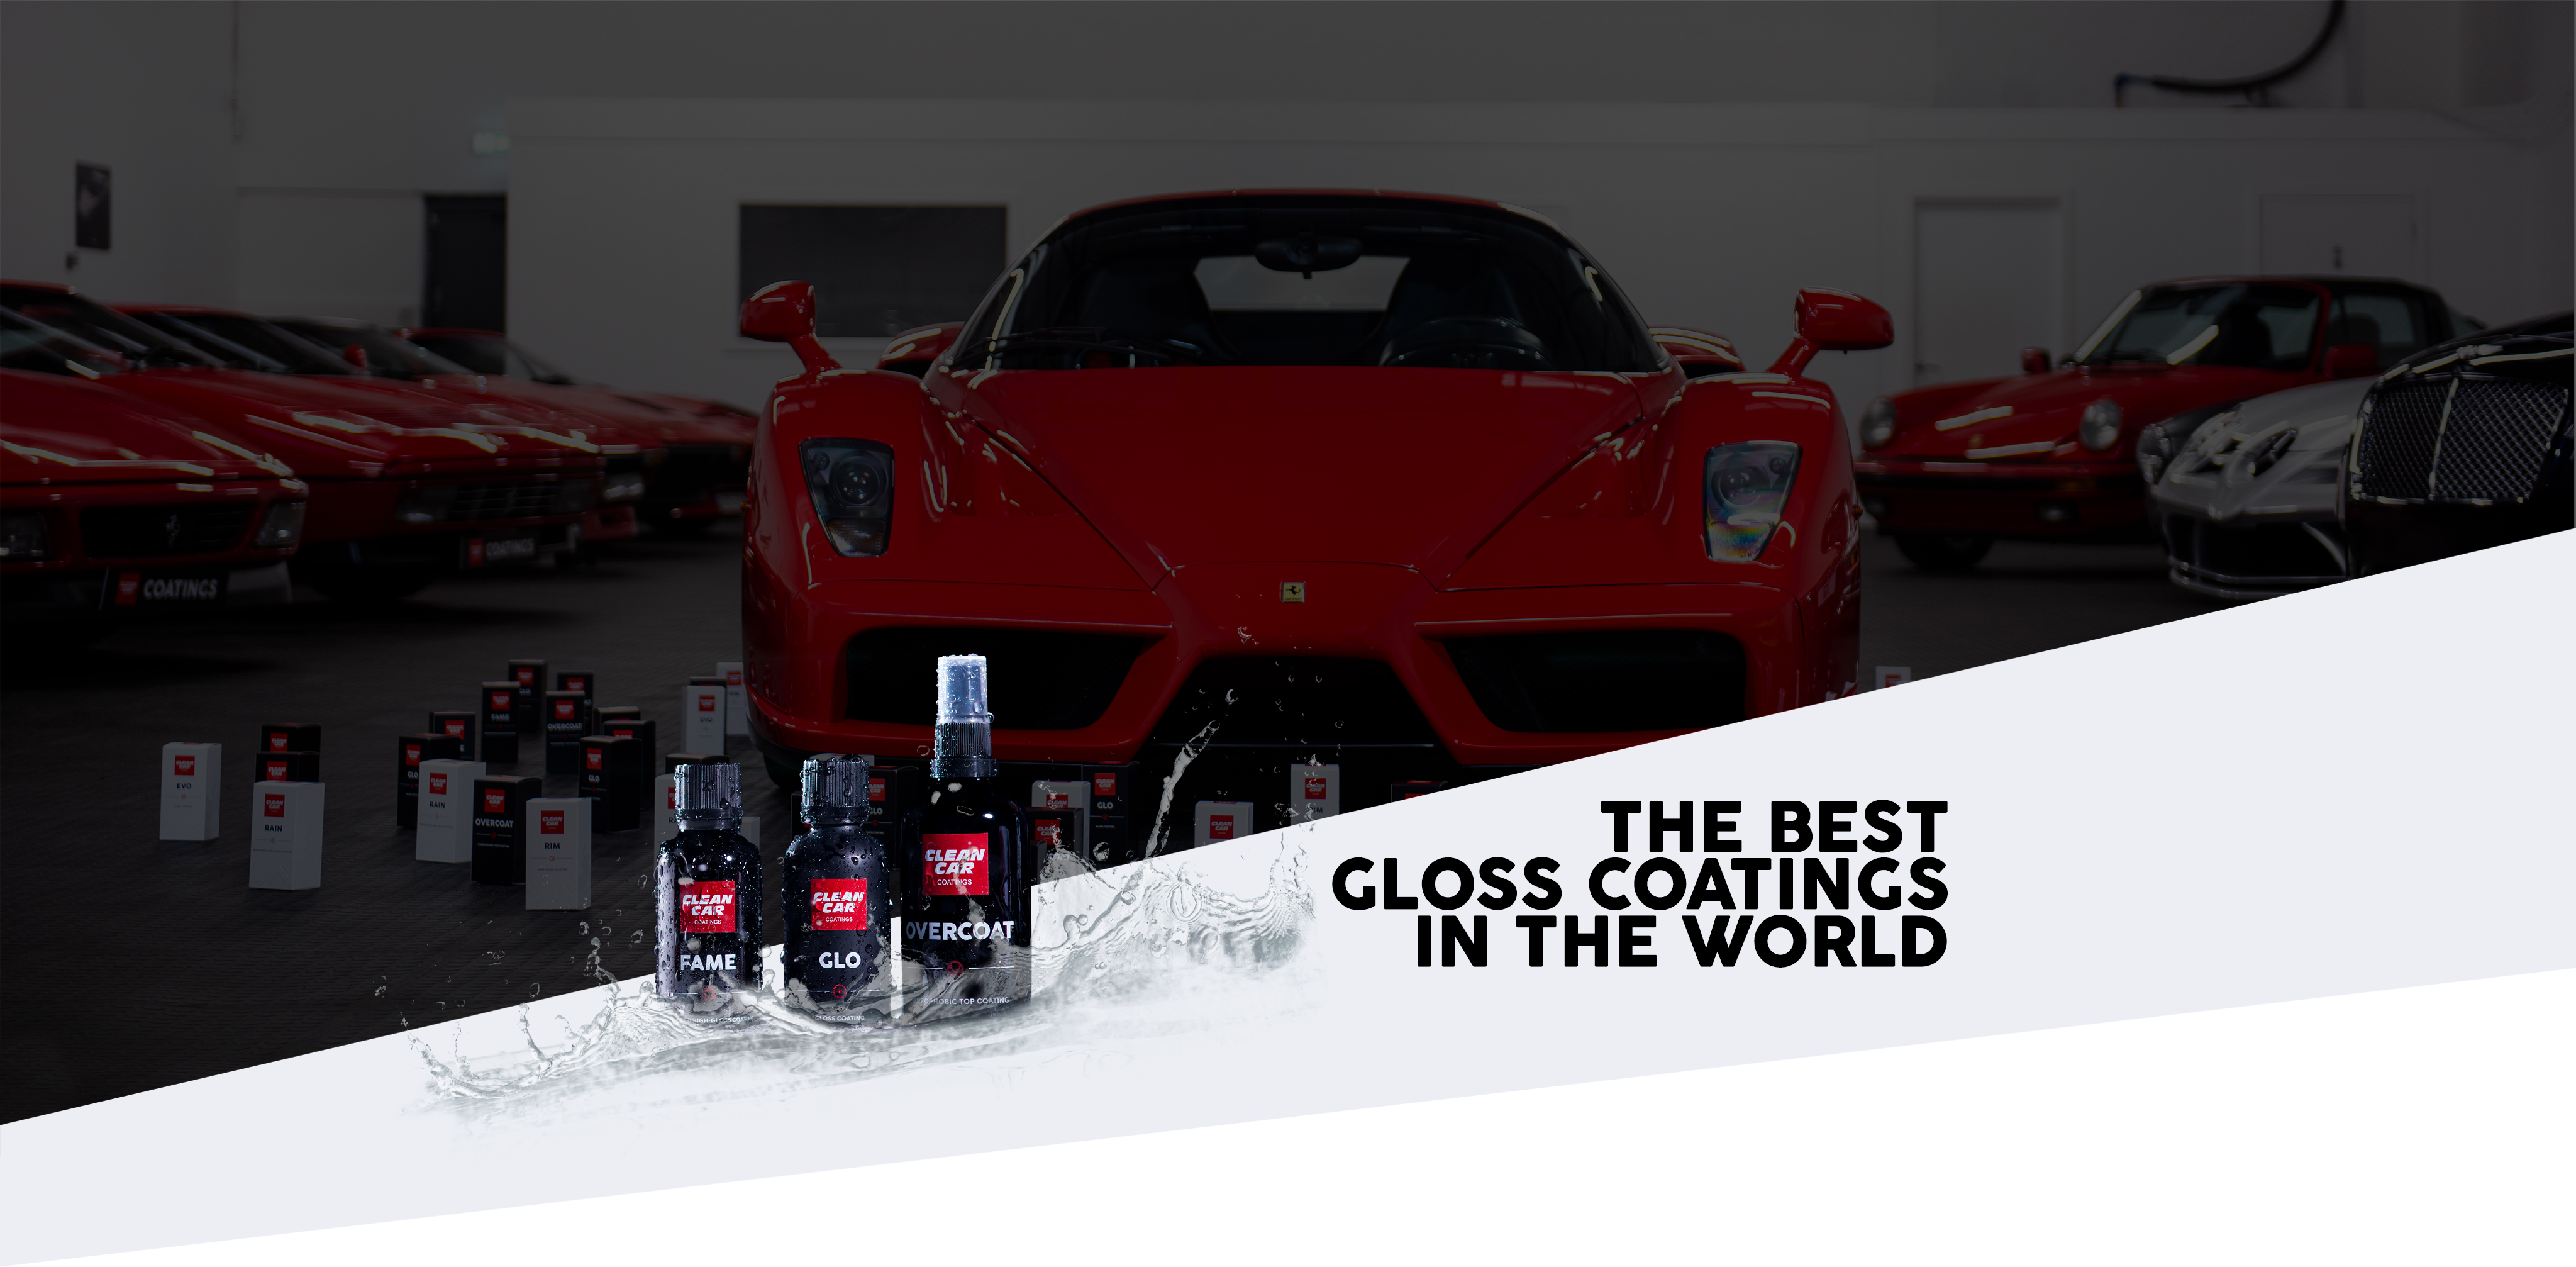 THE BEST GLOSS COATINGS IN THE WORLD